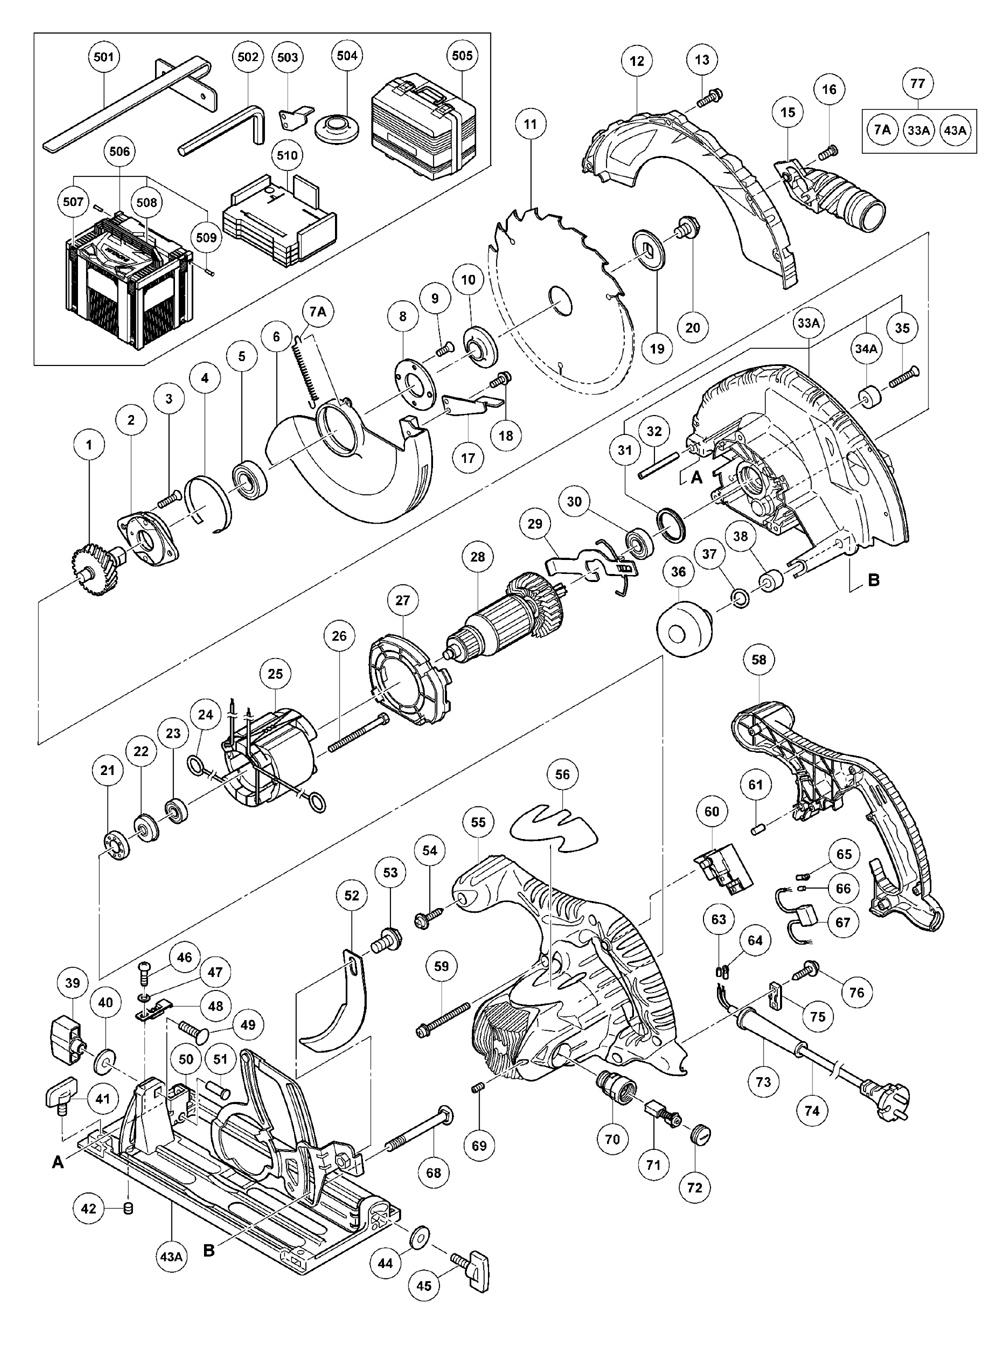 medium resolution of mouseandinsectsrepellentcircuitdiagram 1 wiring diagram source wiring harness part 61116965945 additionally toyota fog light wiring